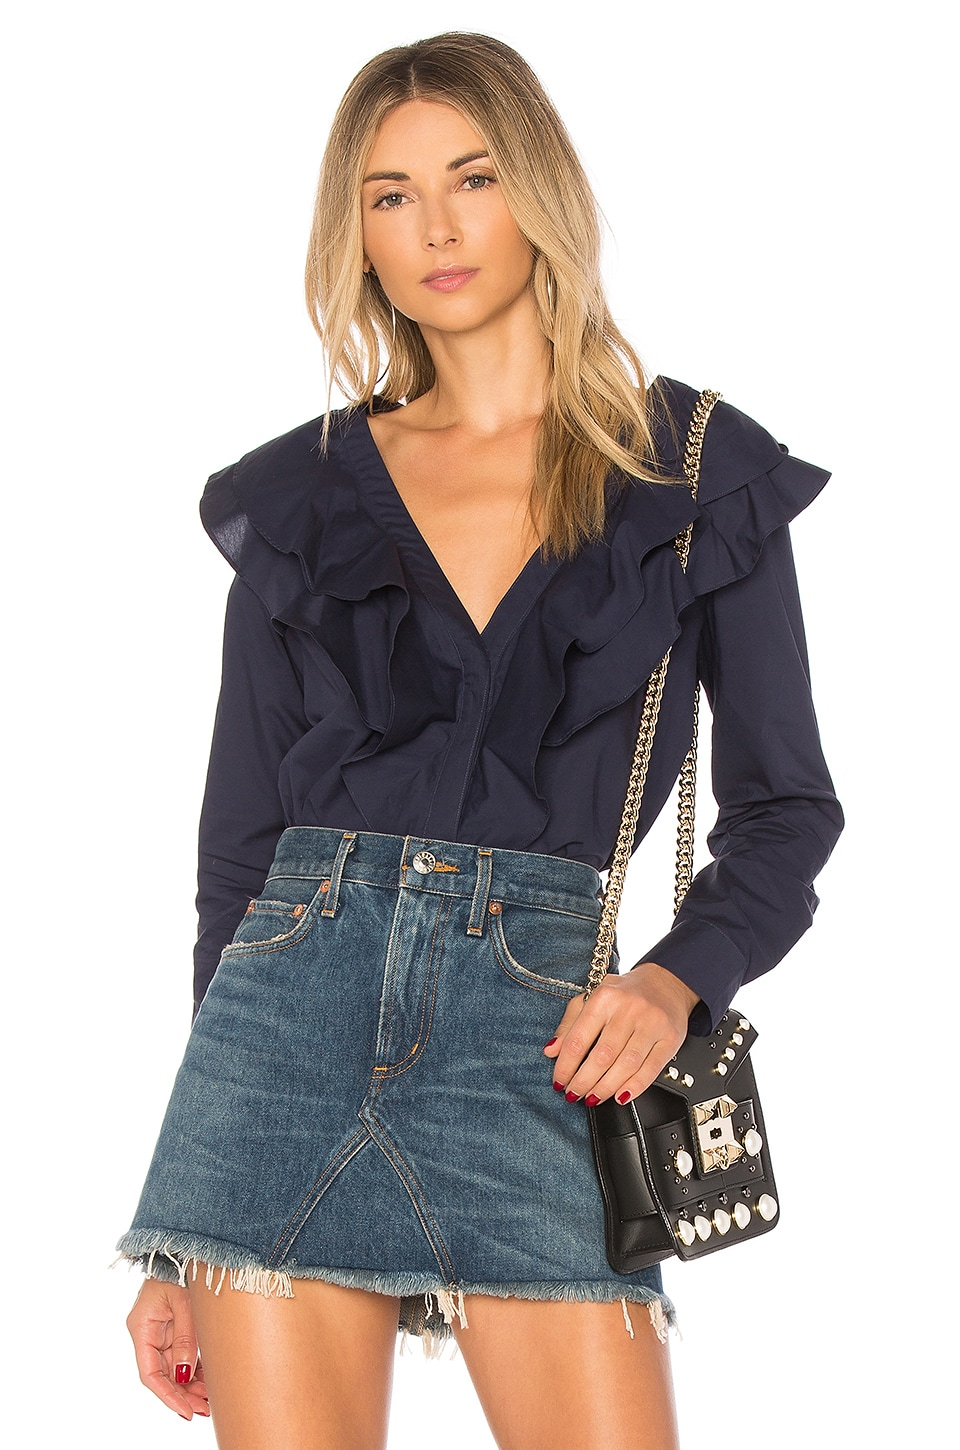 L'Academie The Solene Button Up in Navy